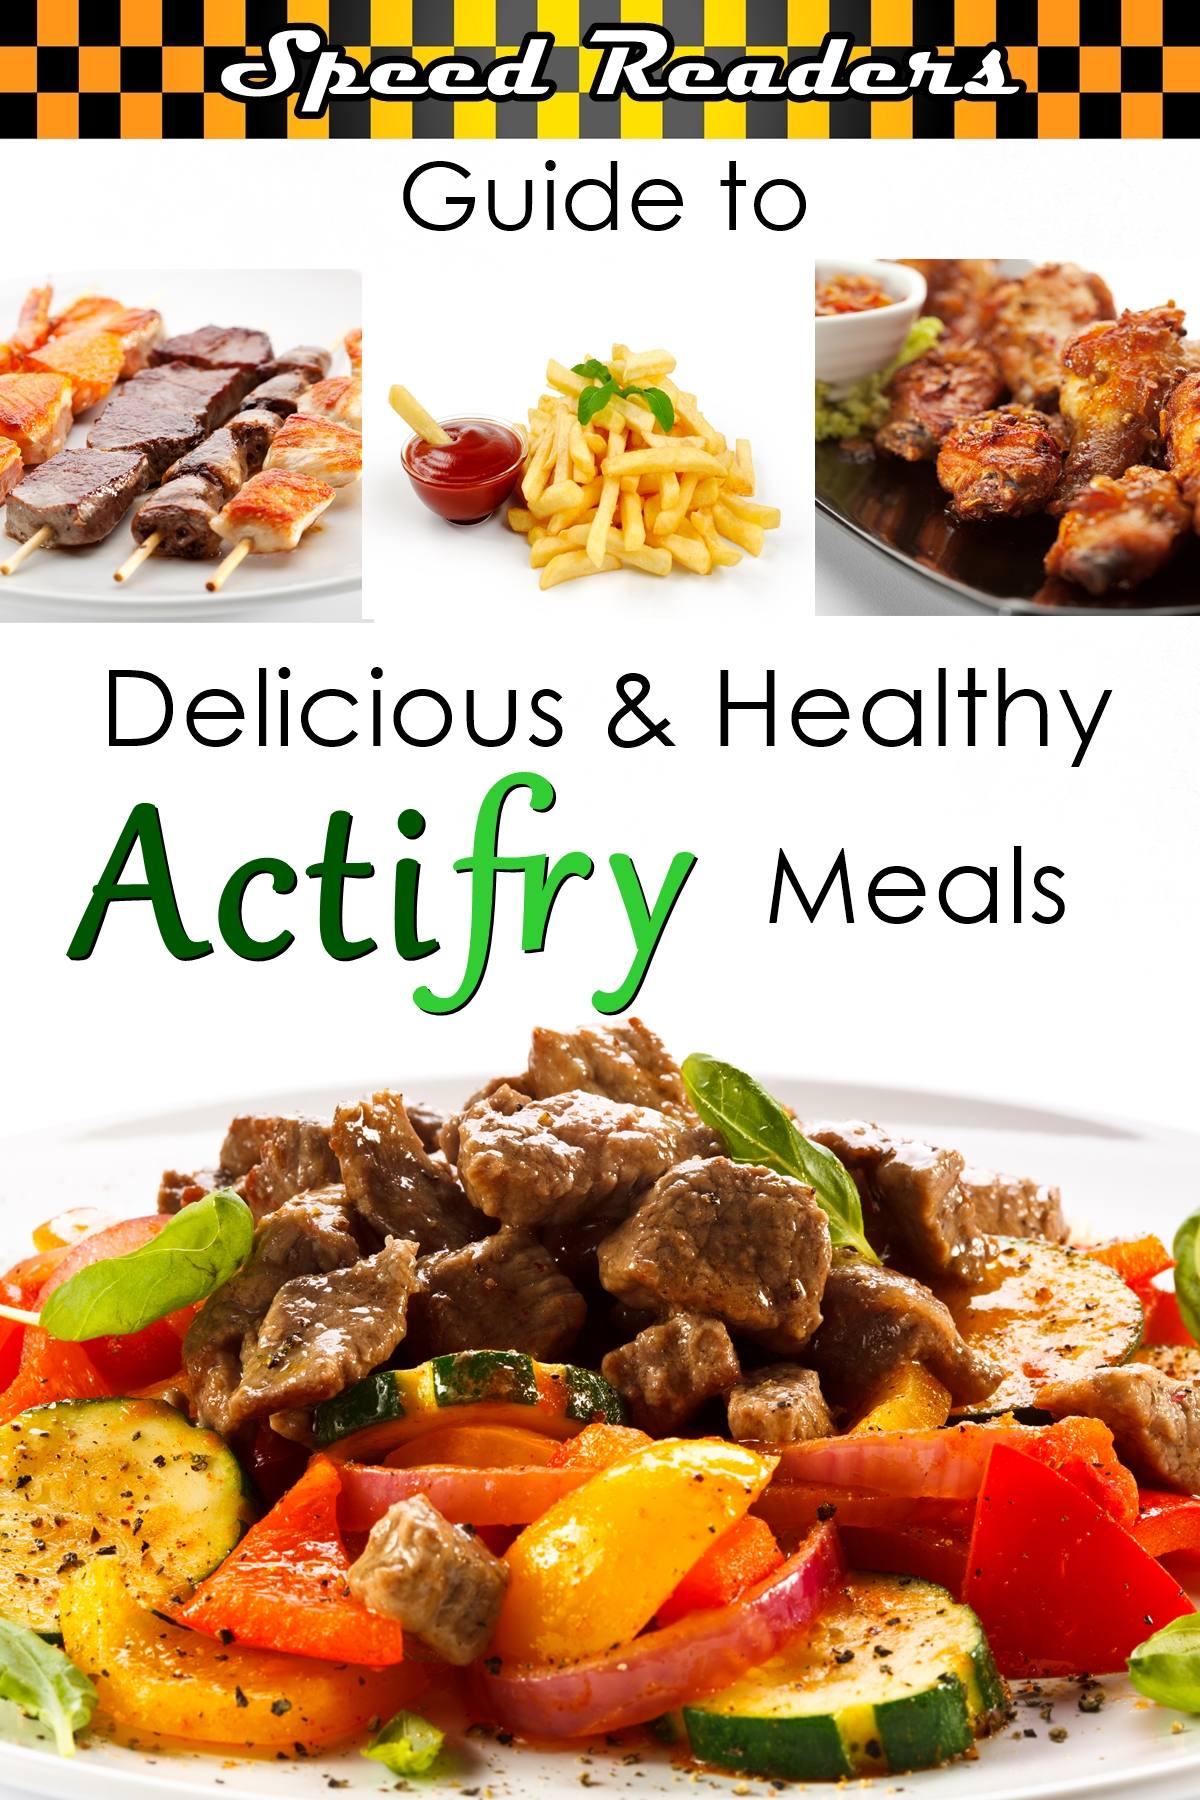 Speed Readers Actifry Meals